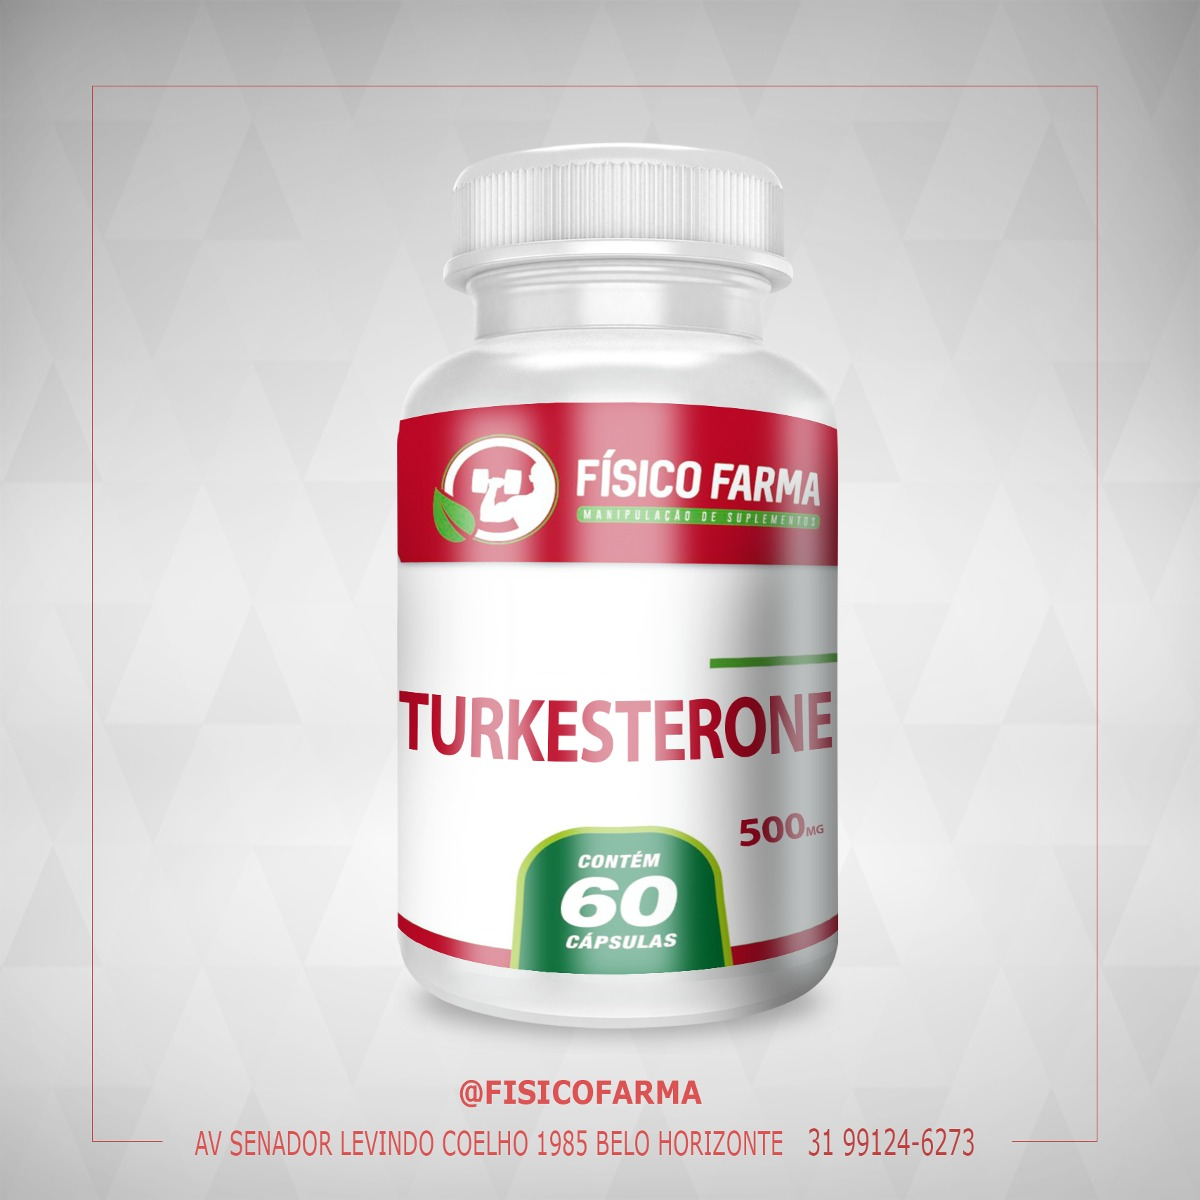 Turkesterone  500MG -  60 CÁPSULAS